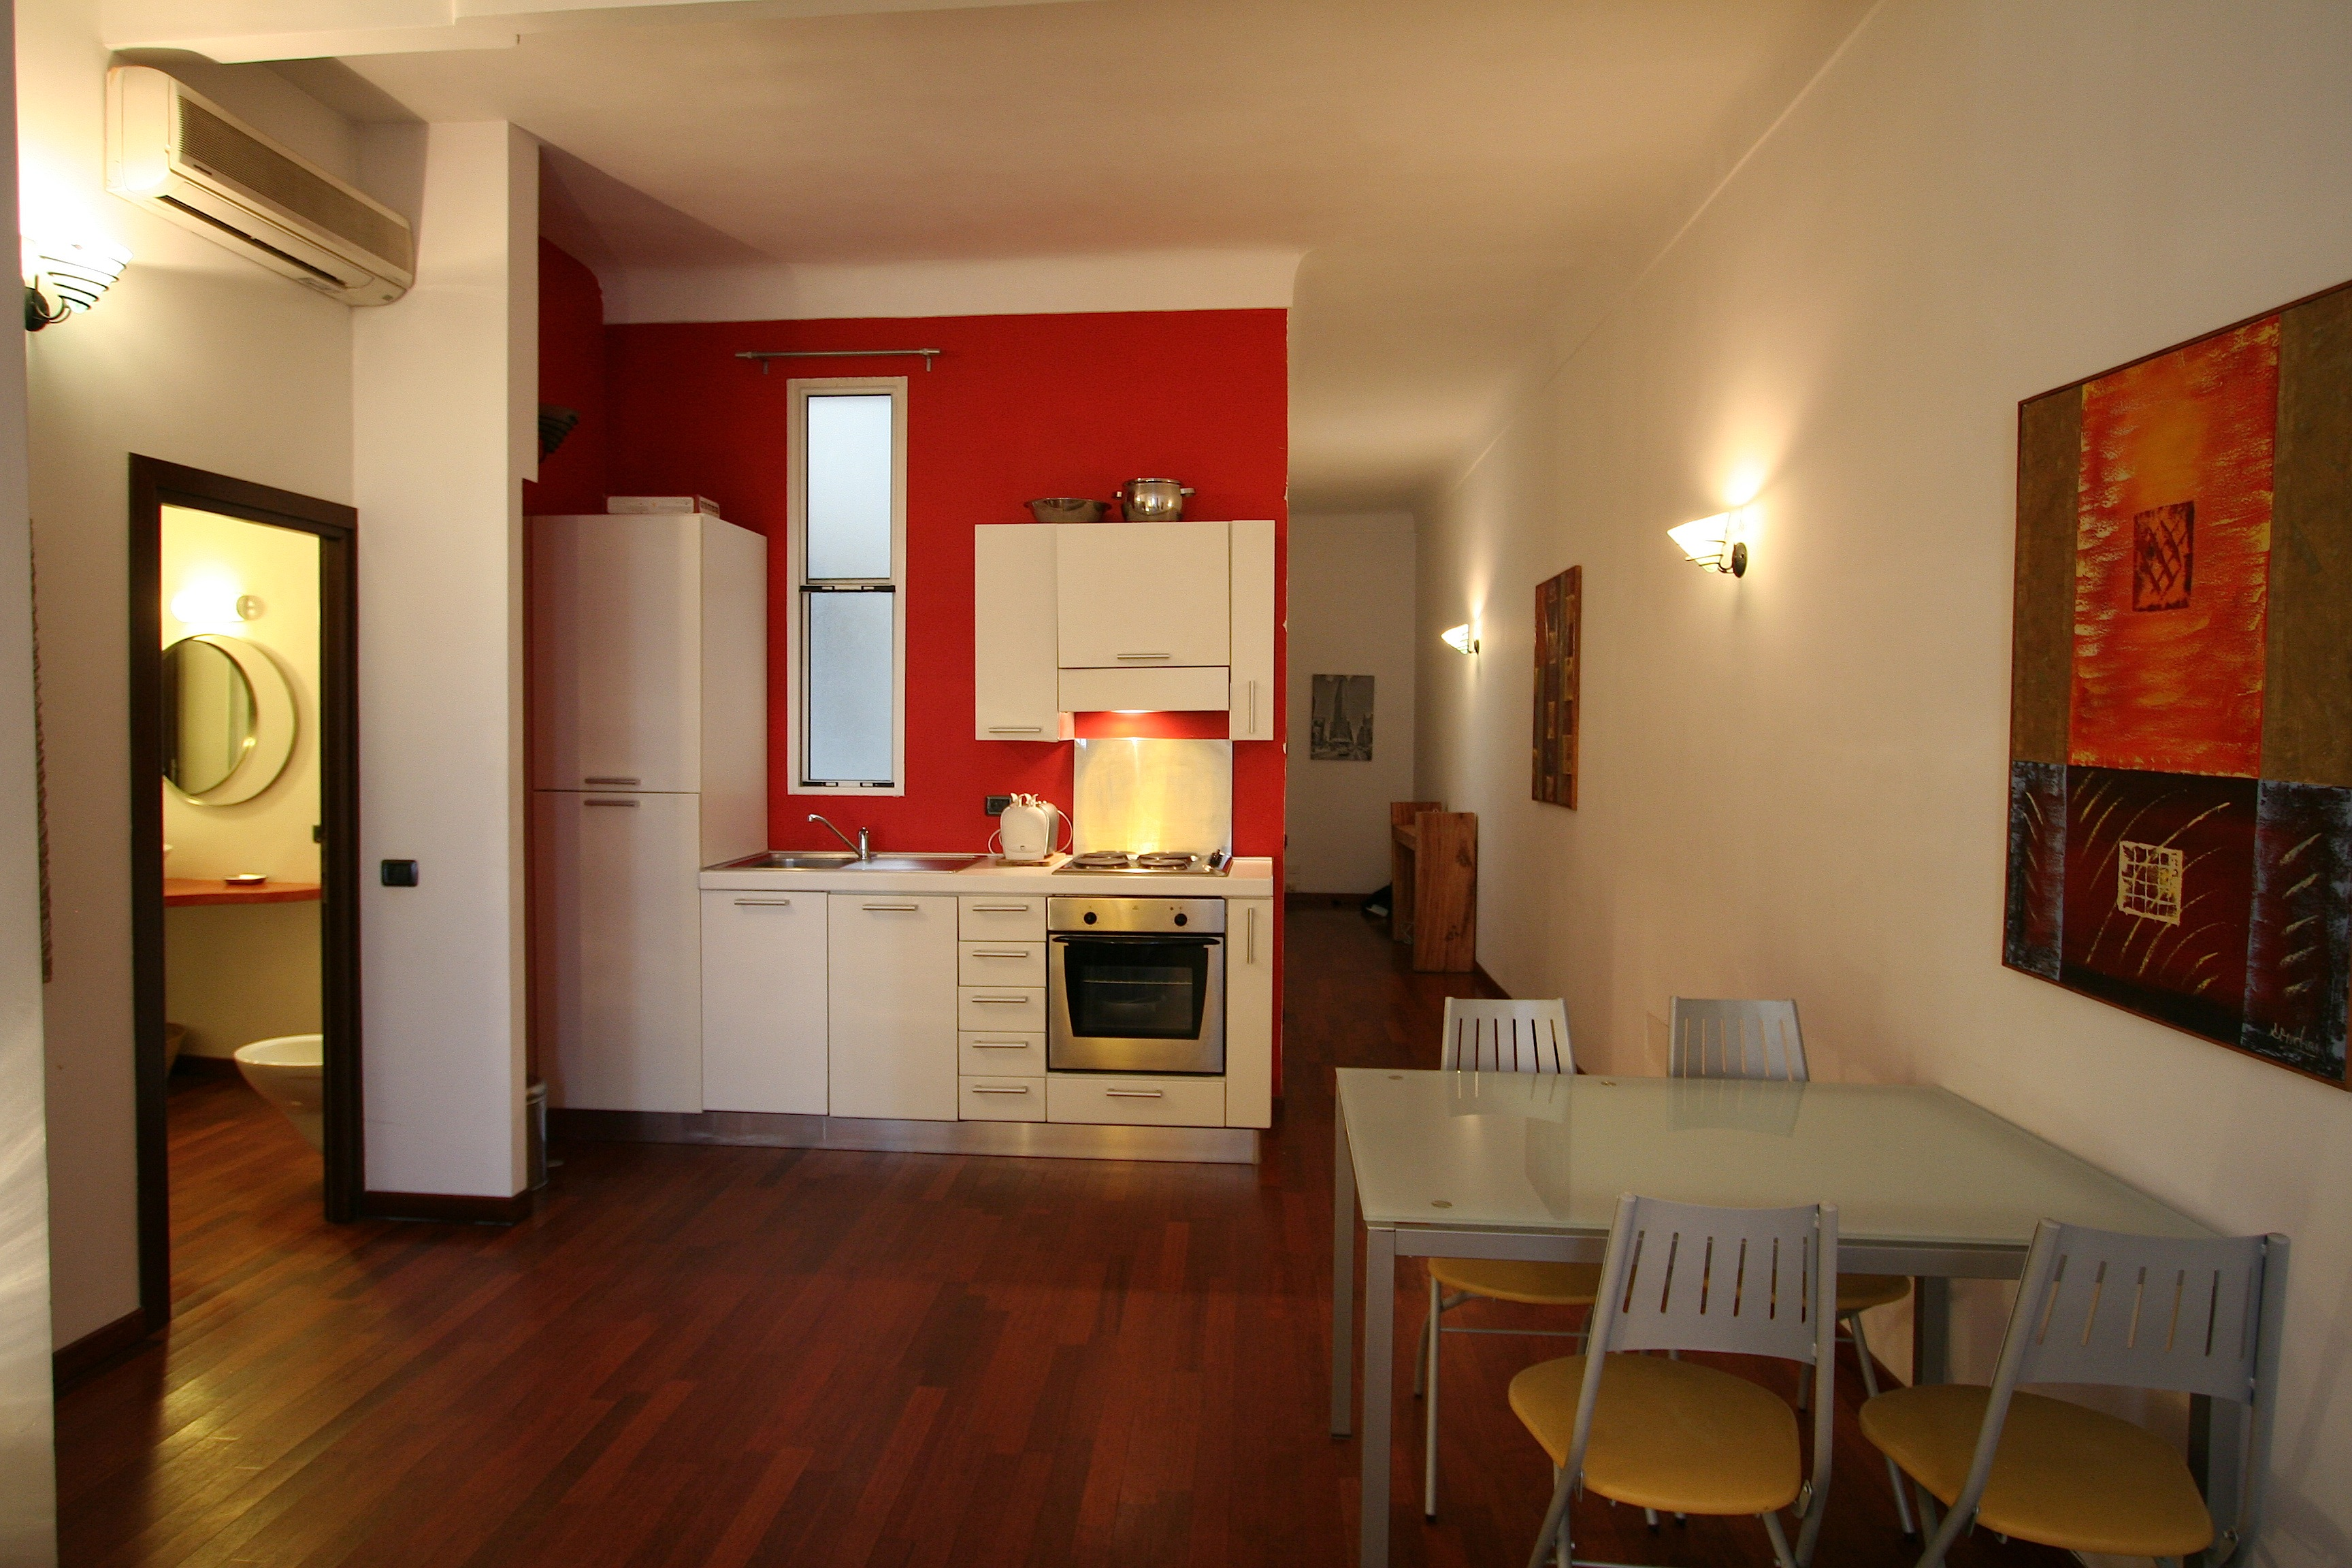 One bedroom apartment located on Rue des Serbes